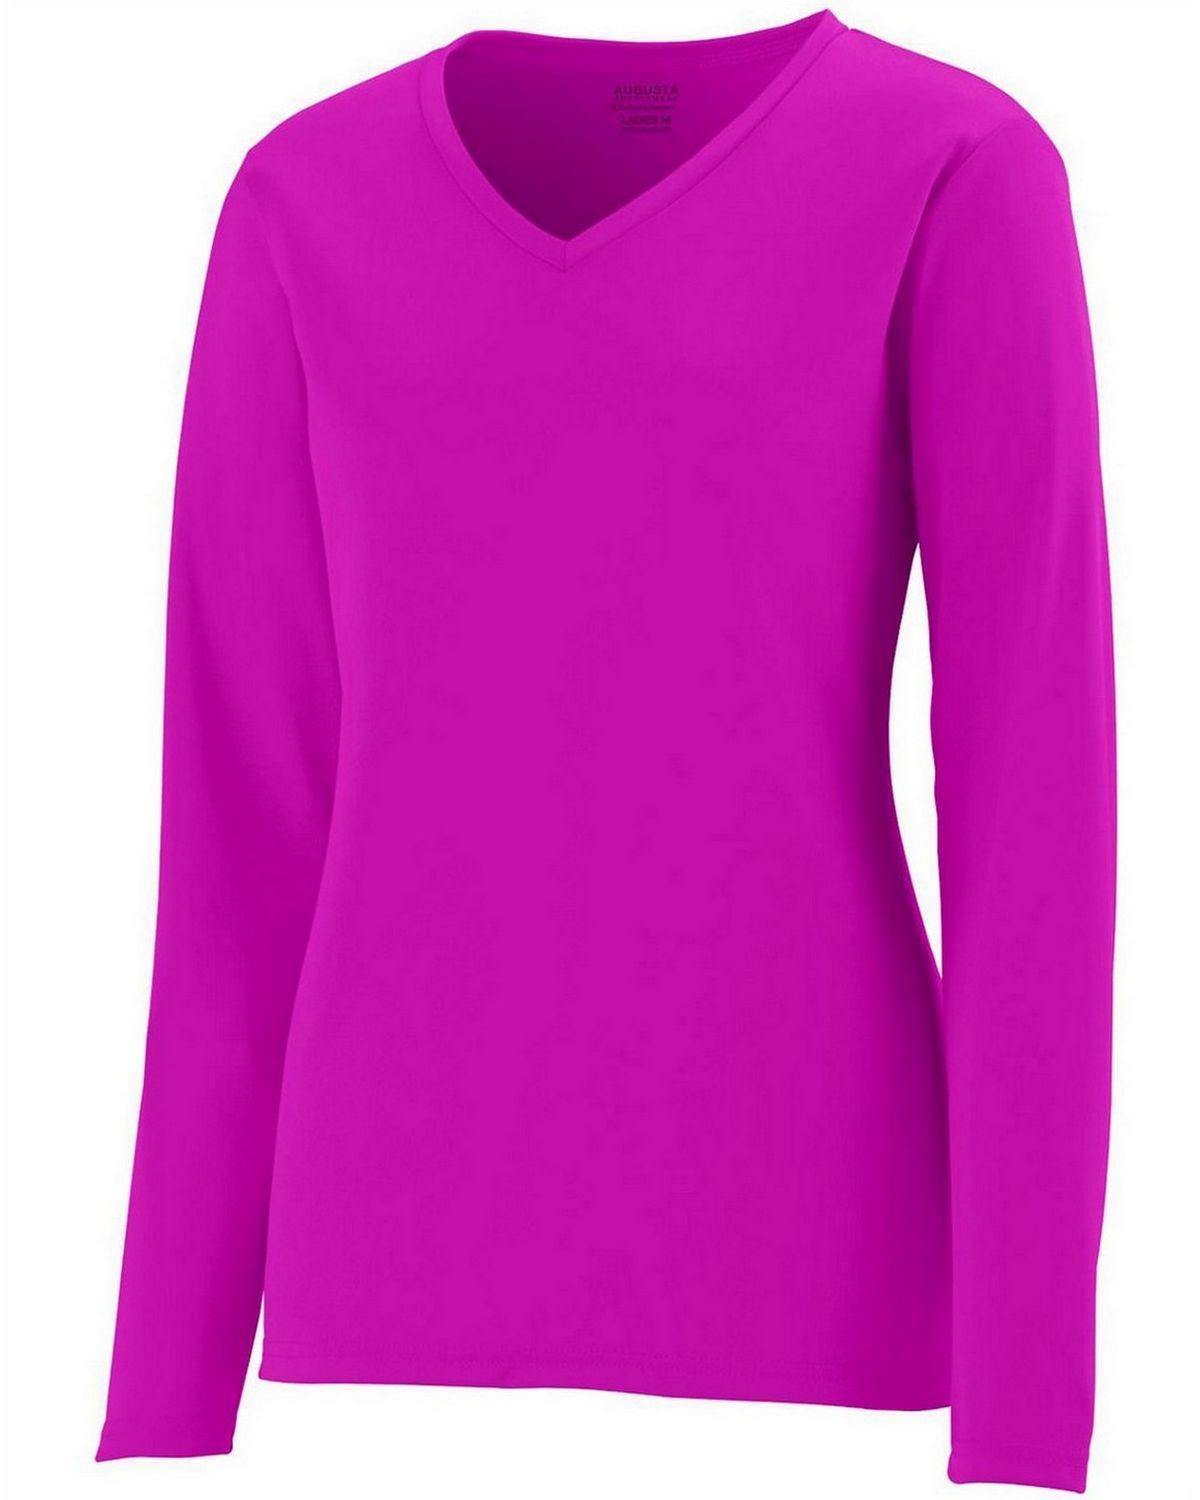 Augusta Sportswear 1788 Long-Sleeve Jersey - Power Pink - L 1788